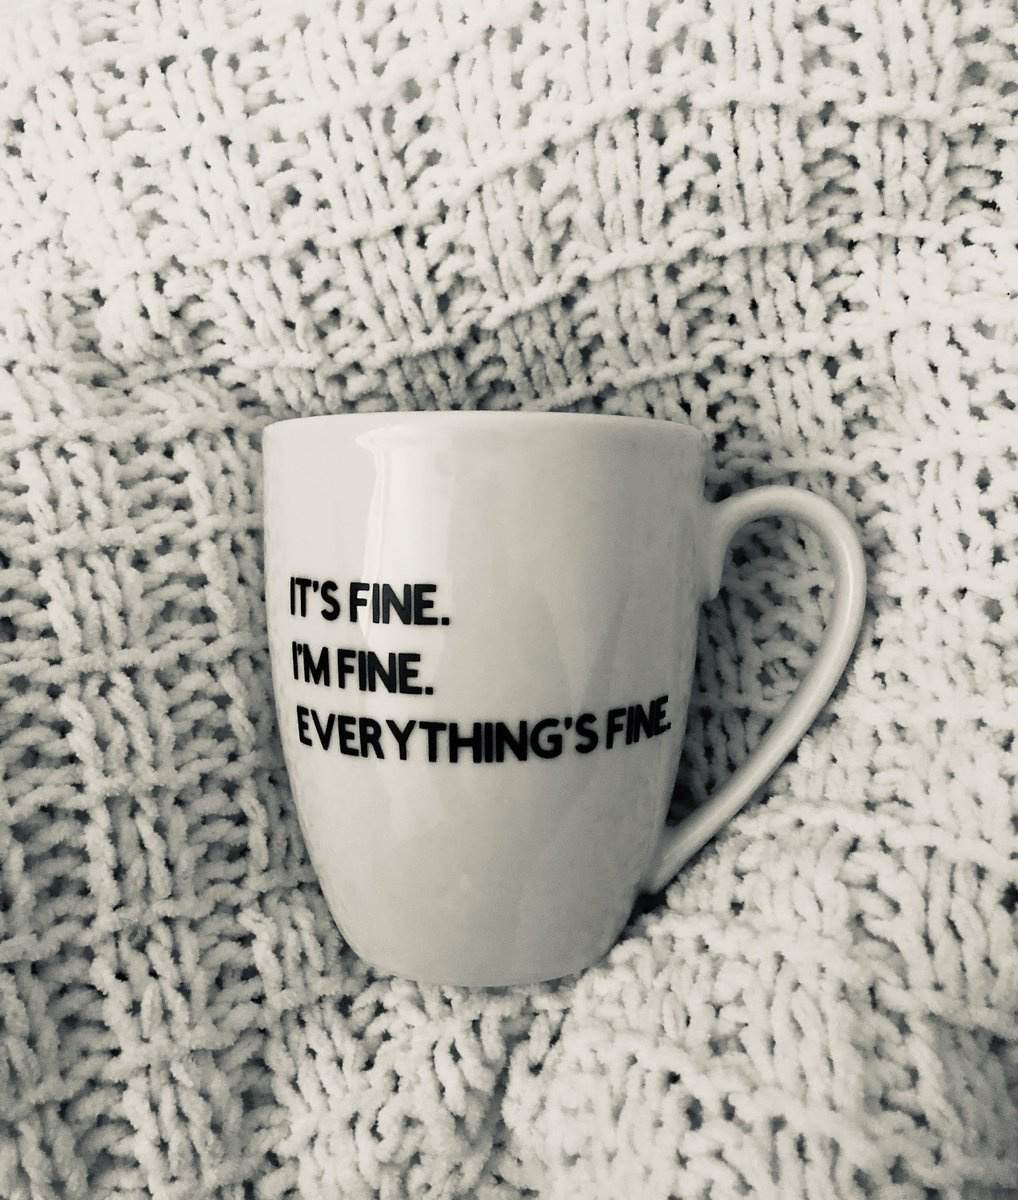 Excited to share the latest addition to my #etsy  shop: Its fine mug | Everyday mug | gift/self love | Coffee mug  https://etsy.me/2V59X1N   #housewares  #white  #yes  #black  #ceramic  #mug  #coffee  #funny  #cup